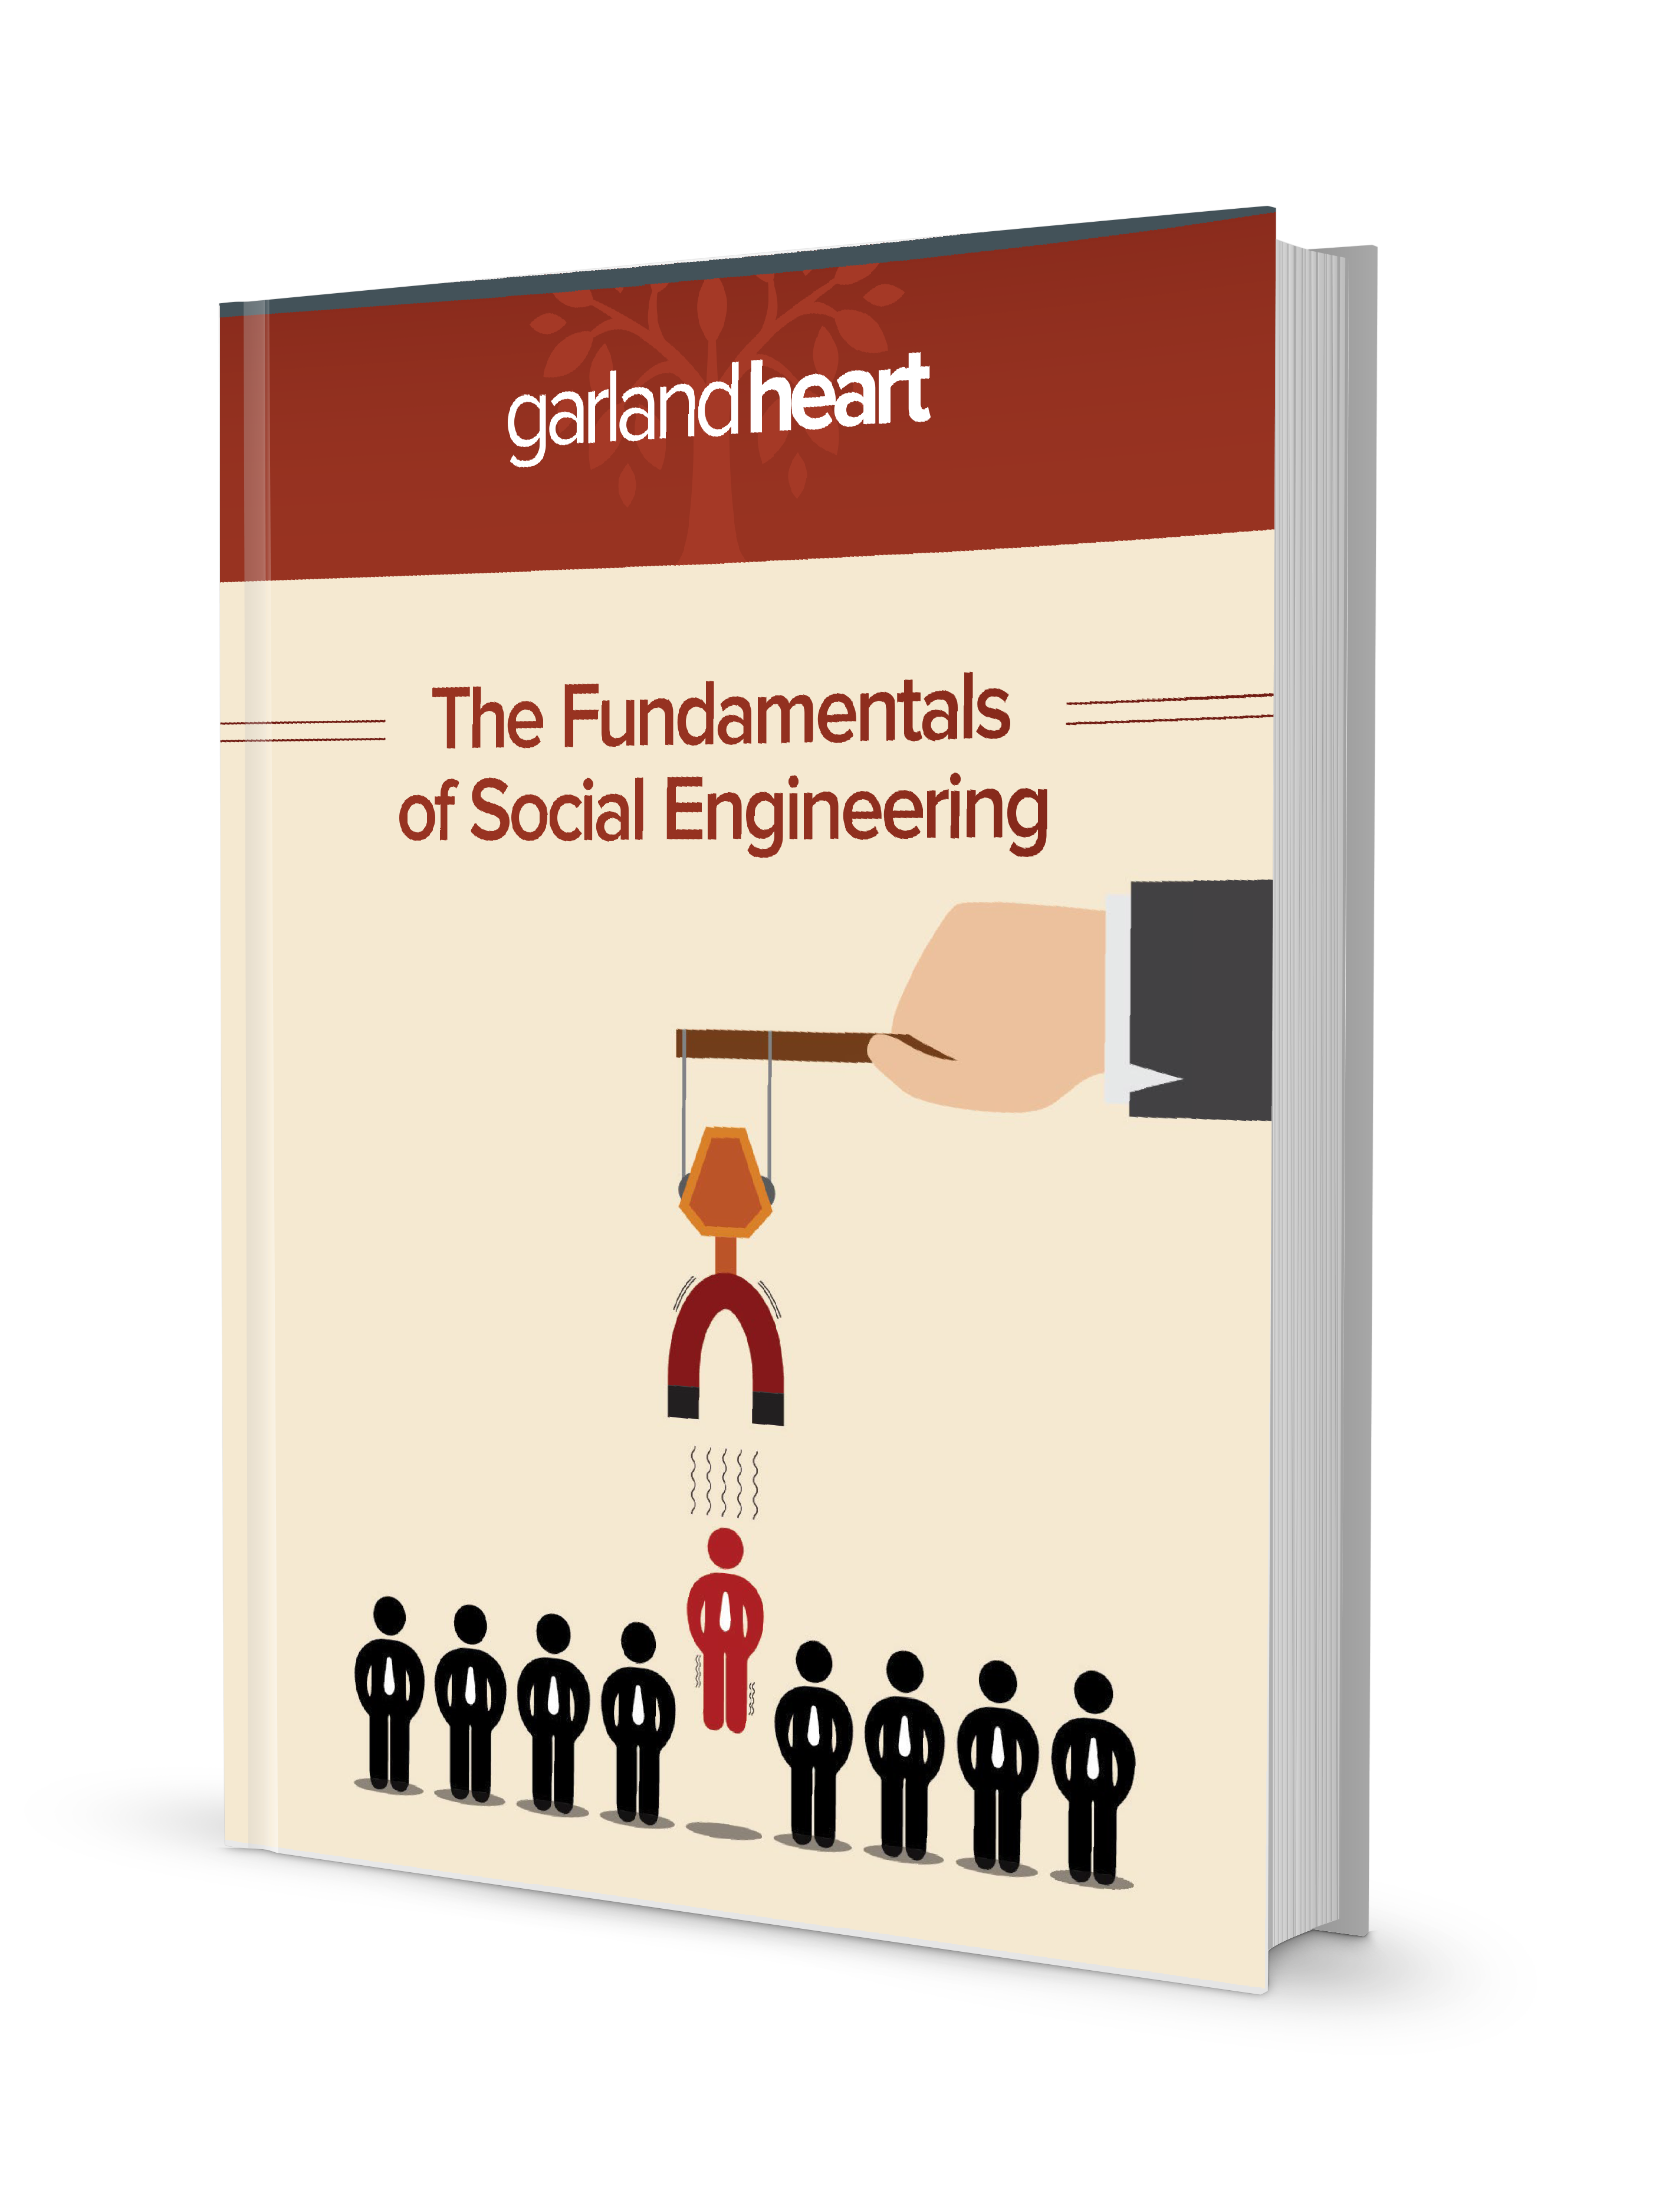 The Fundamentals of Social Engineering